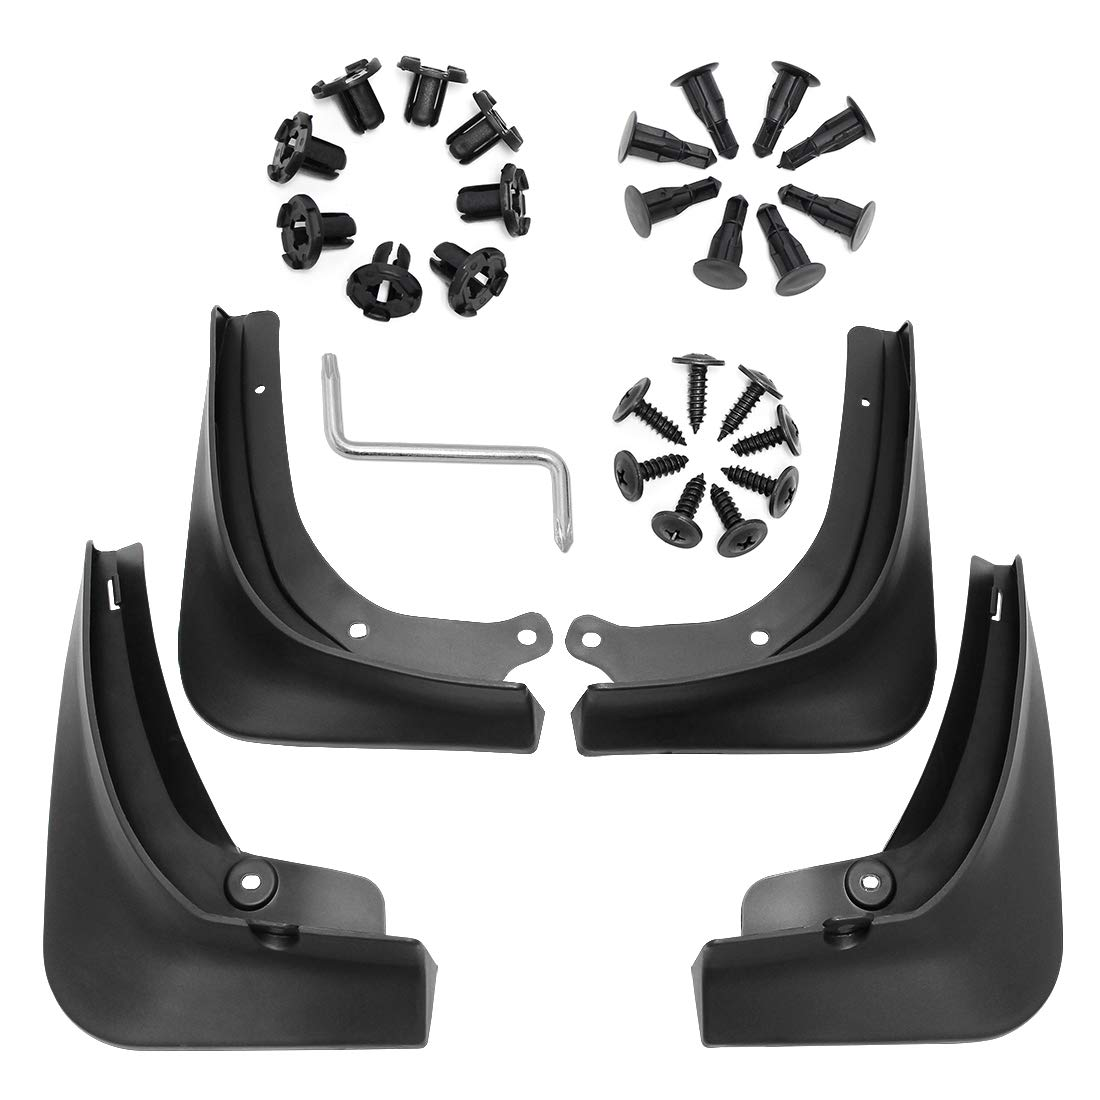 Set of 4 Black Wisamic Mud Flaps Splash Guards for Tesla Model 3 Fender Flares with Retainer Clips and Screwdriver